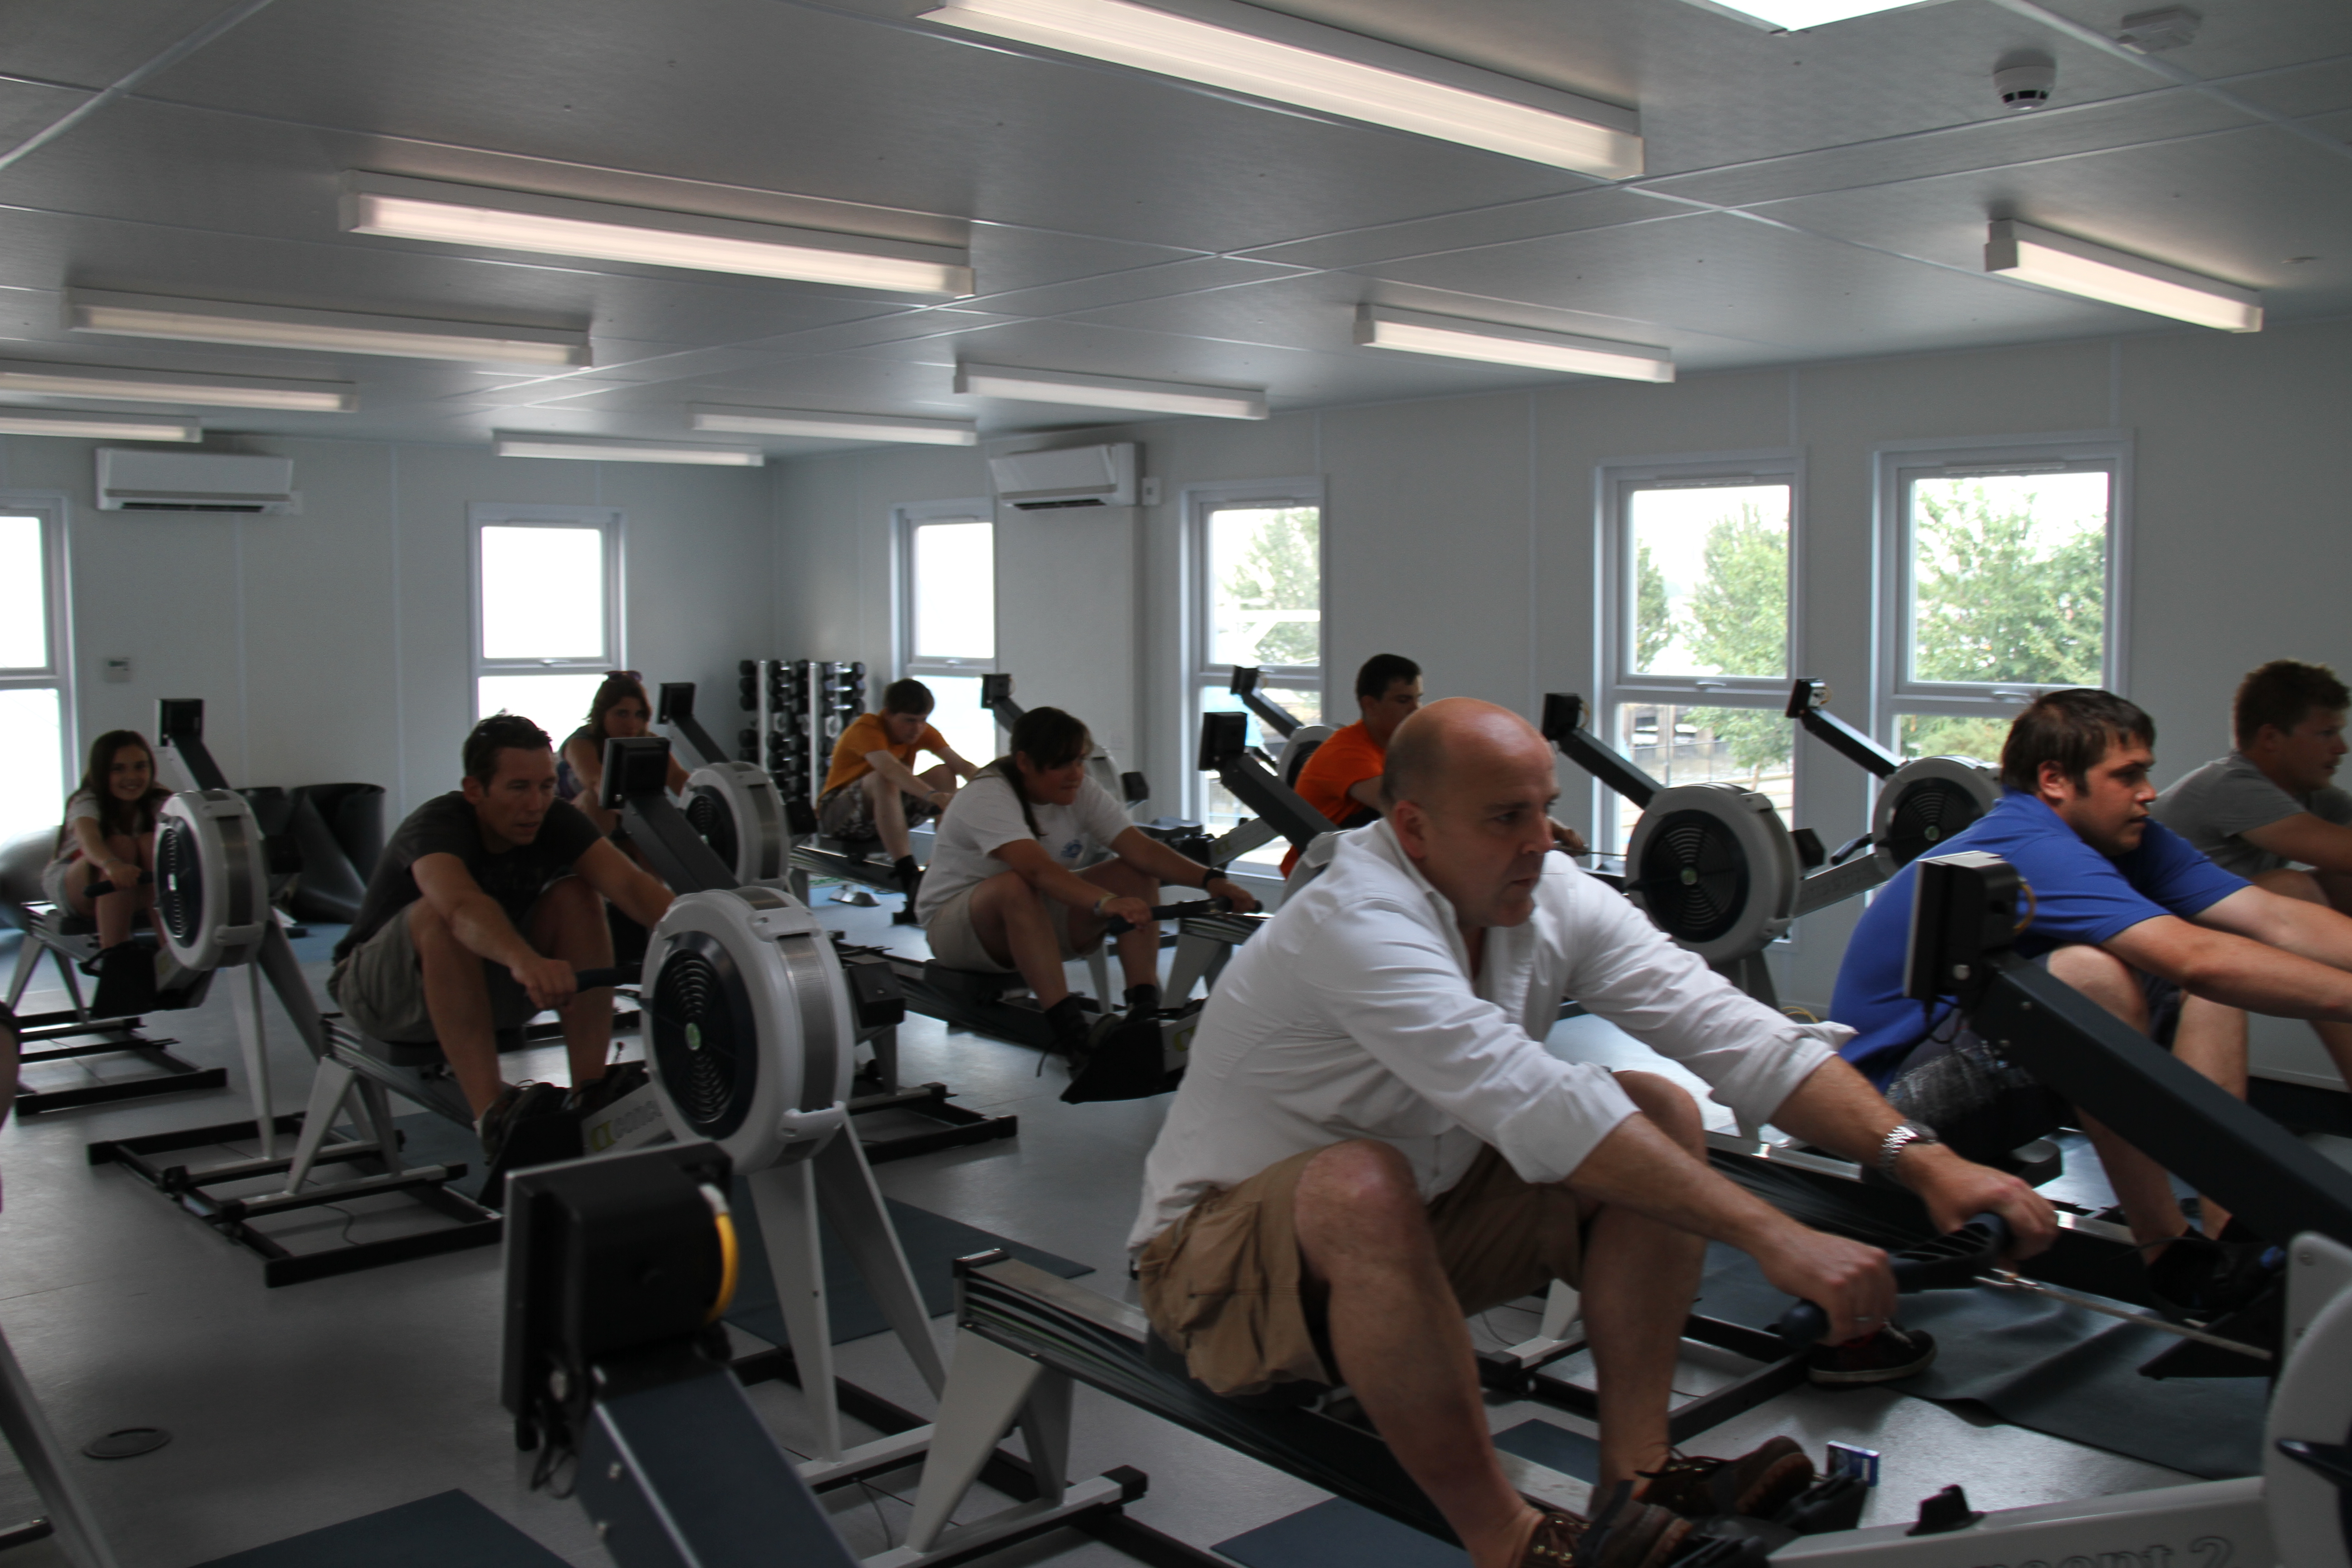 Dry rowing the ahoy centre